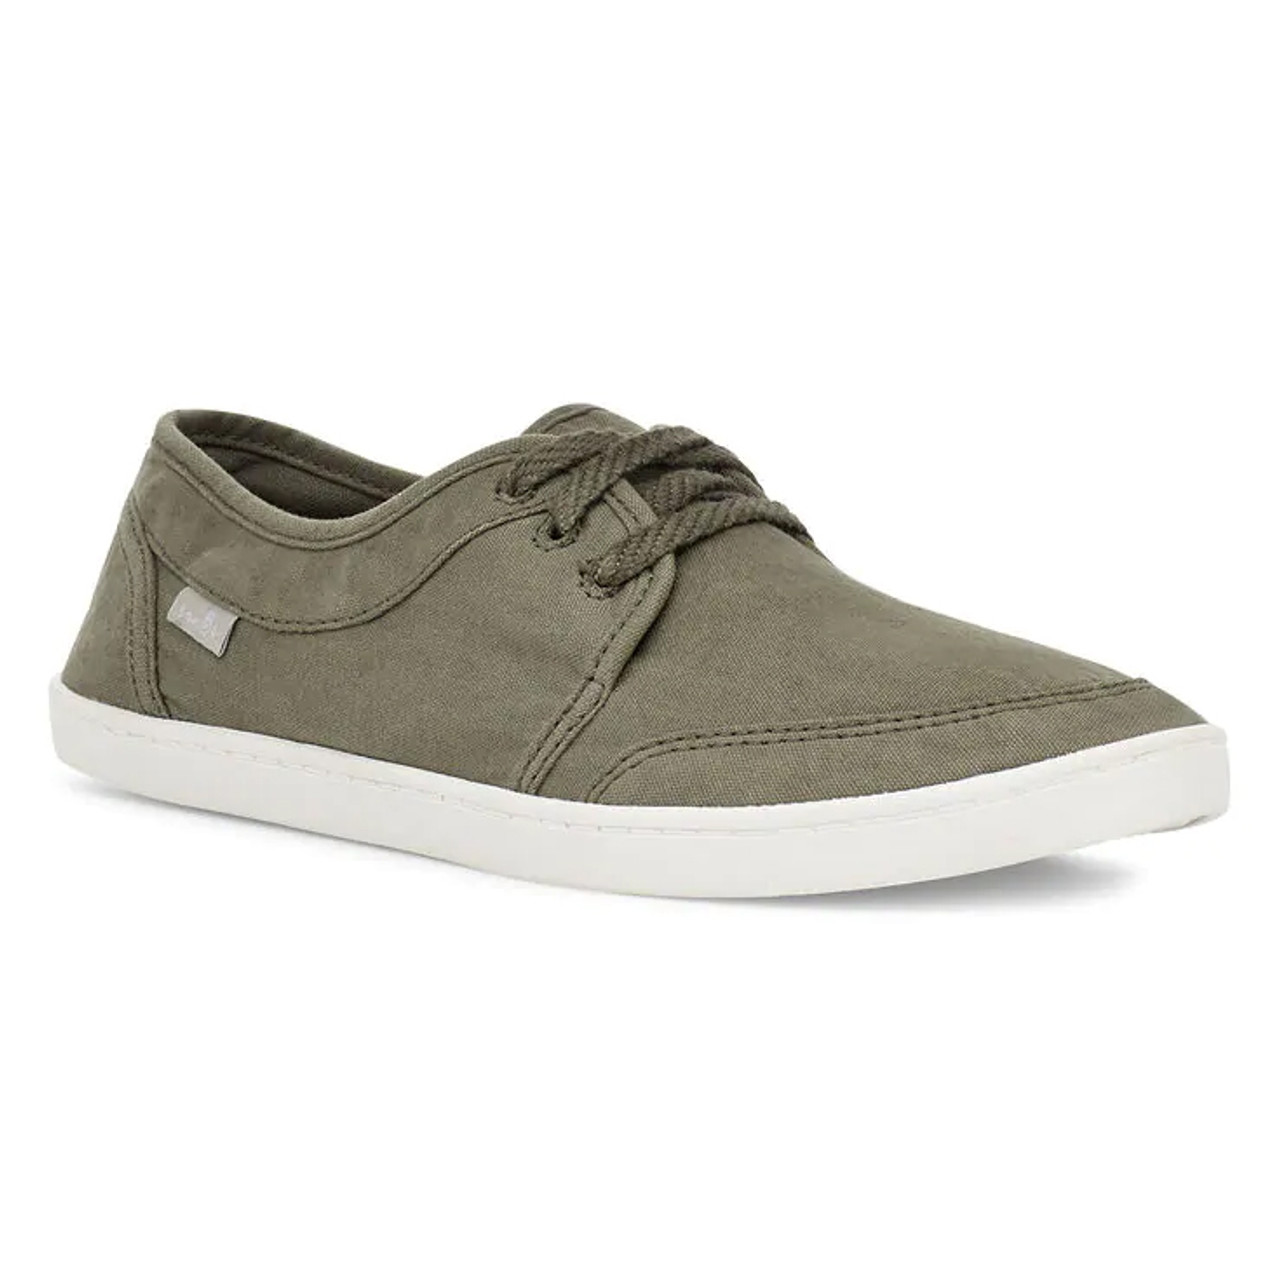 Sanuk Women's Shoes - Pair O Dice Lace - Military Green - Surf and Dirt